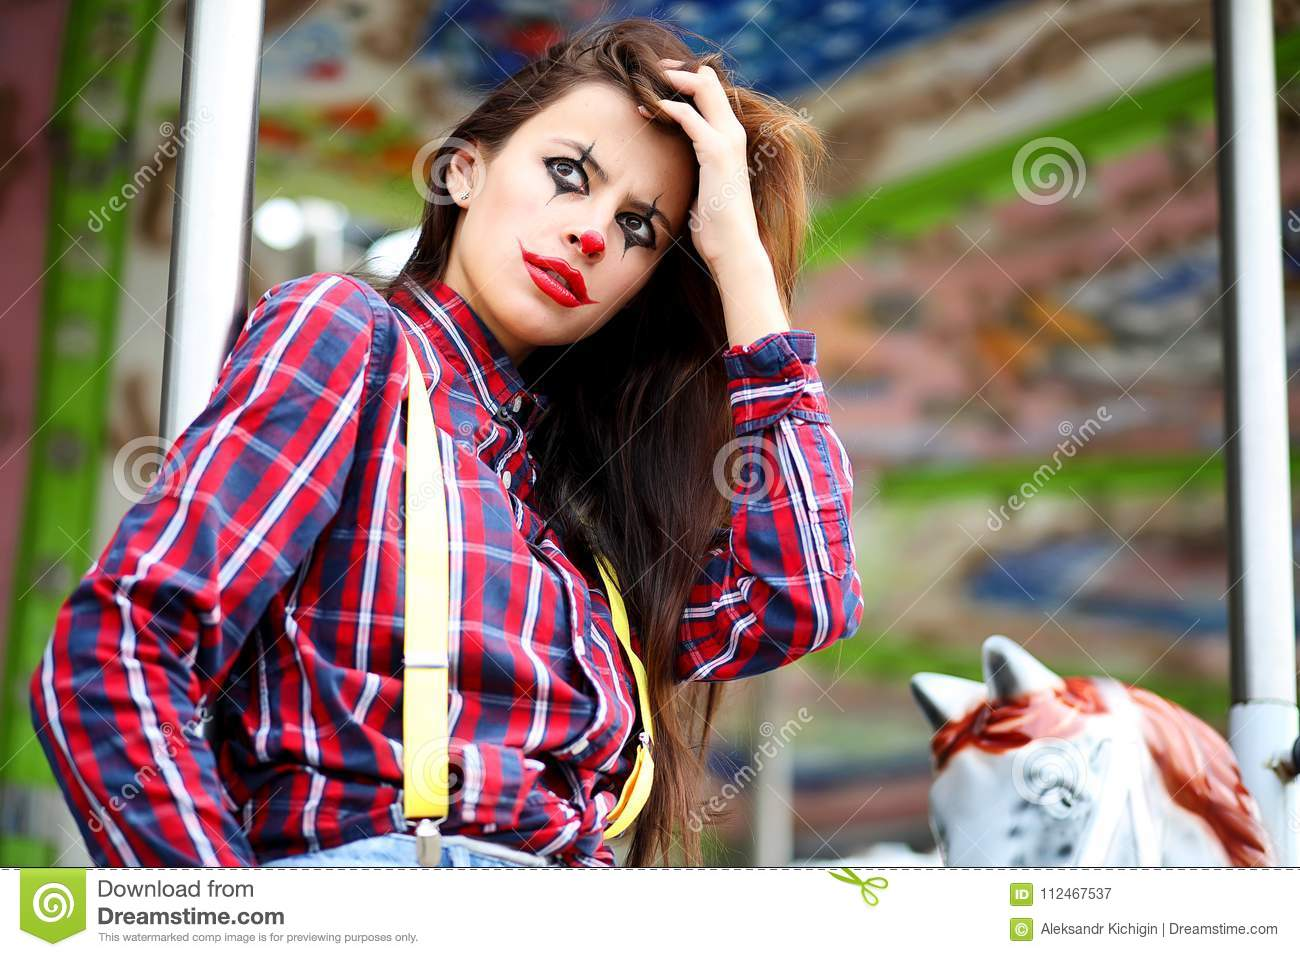 Cute girl in a clown makeup on a background of a fair